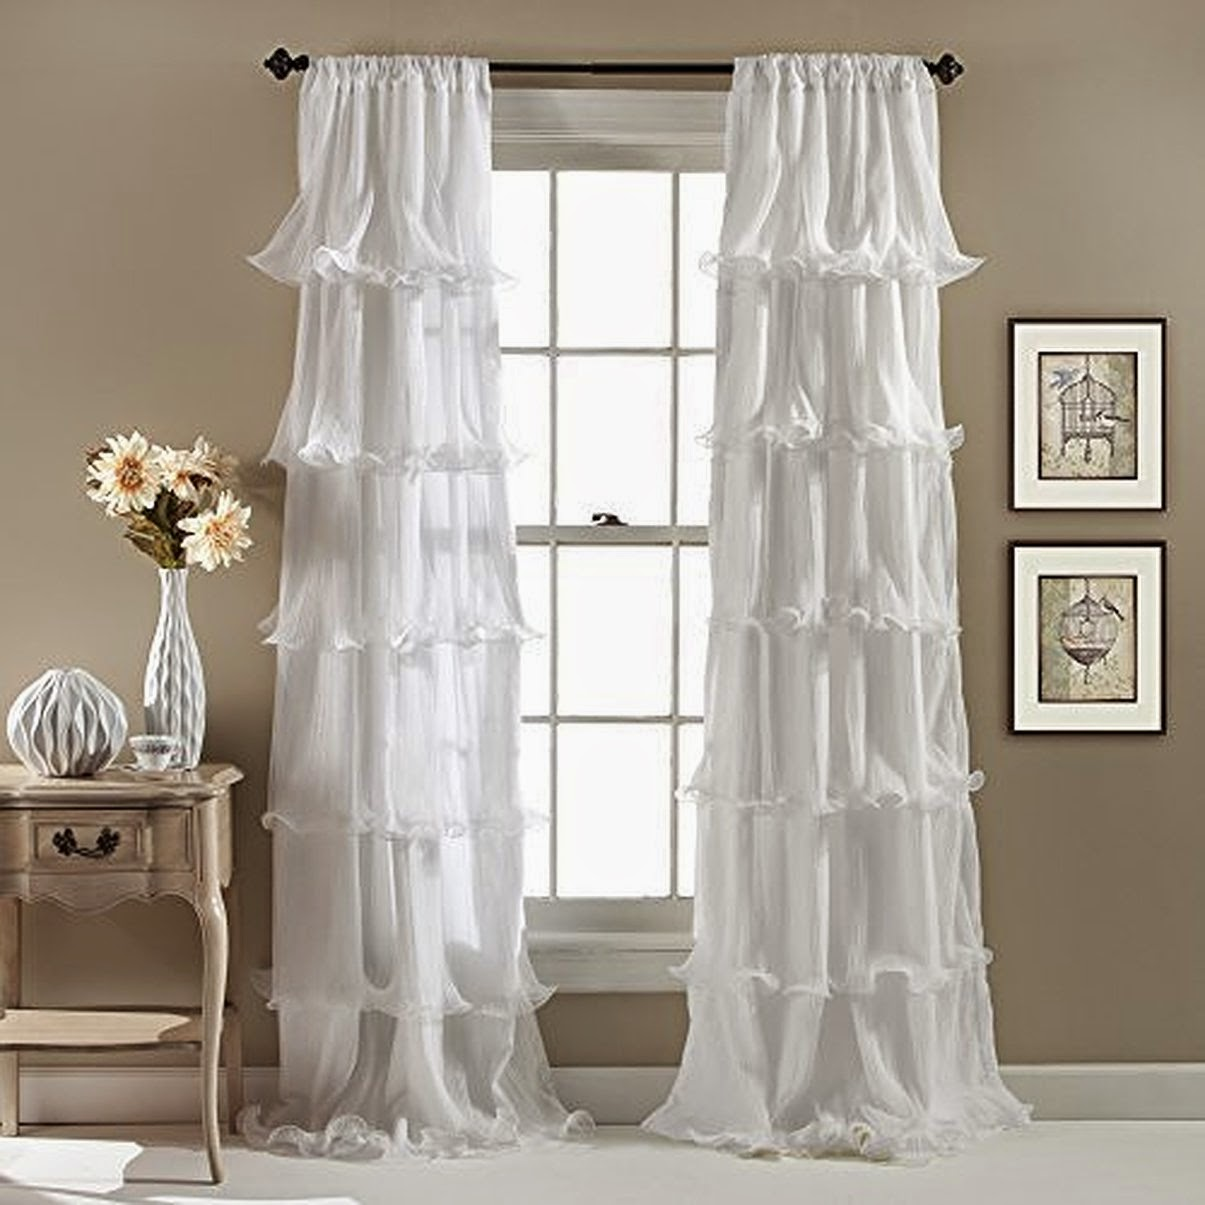 Lush Decor Lake Como Curtains Tealaholic Rocker Chic Bedroom Update And 200 Giveaway